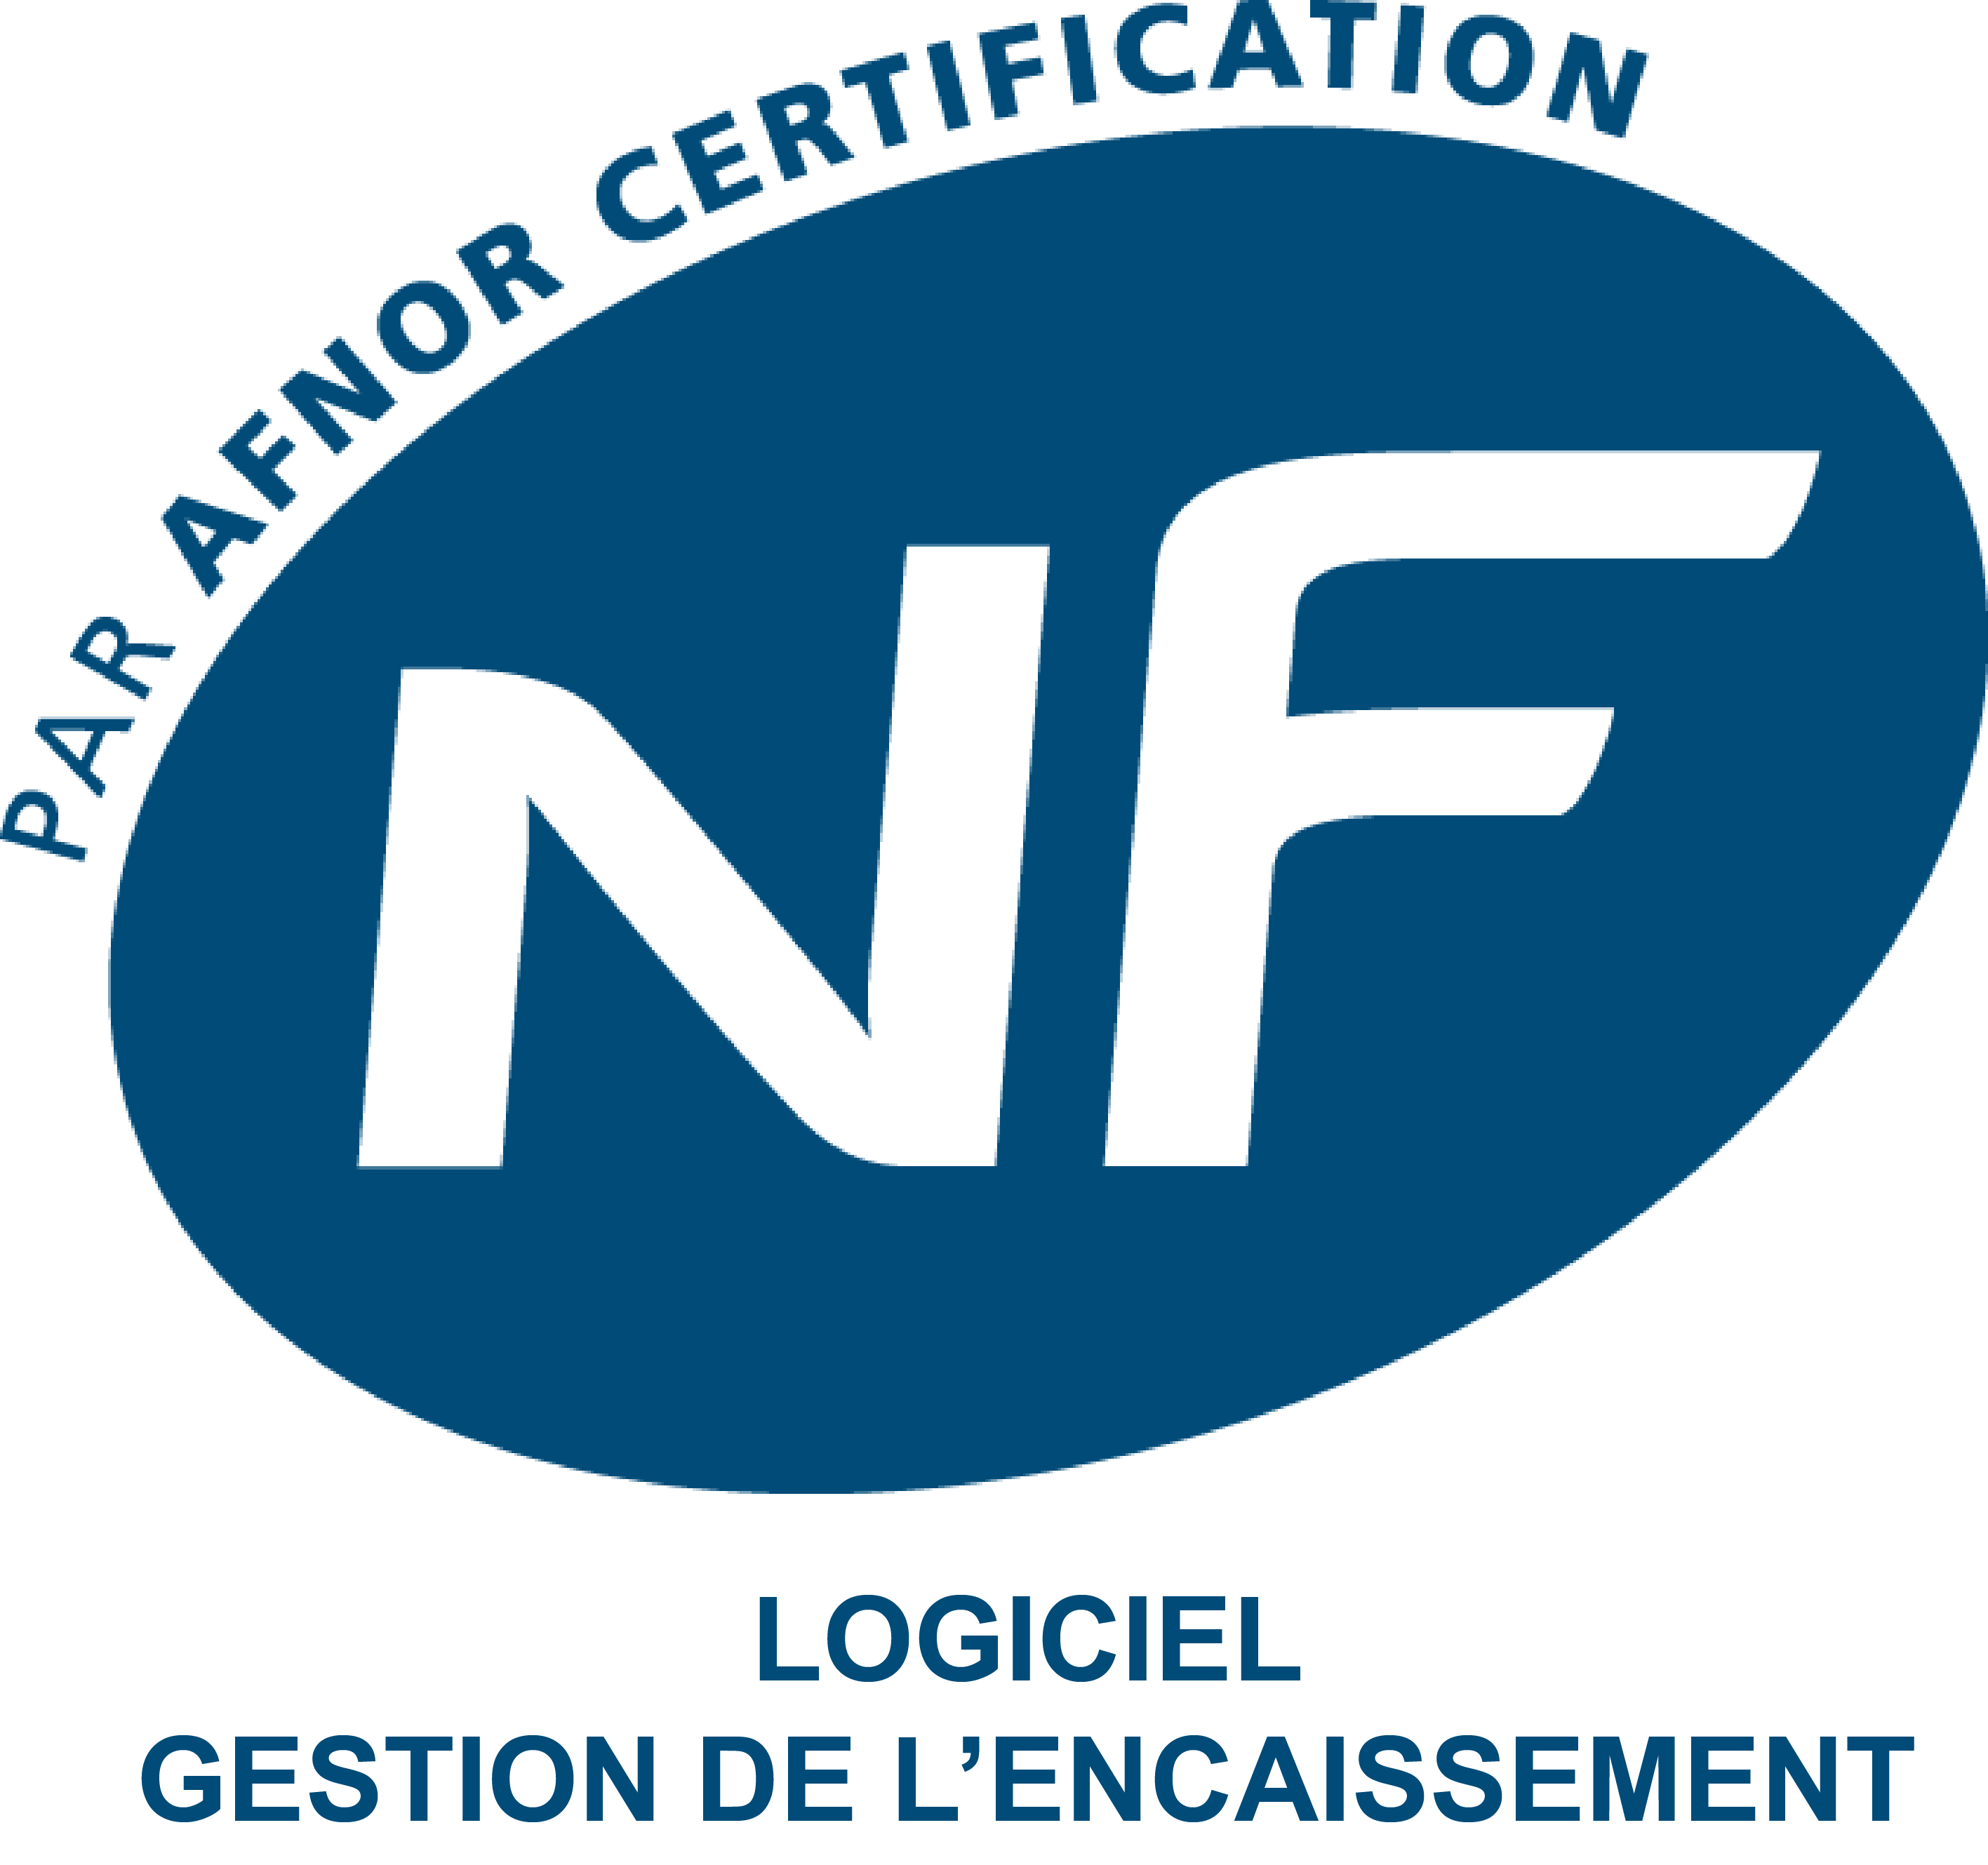 LABEL-NF-525-GESTION-